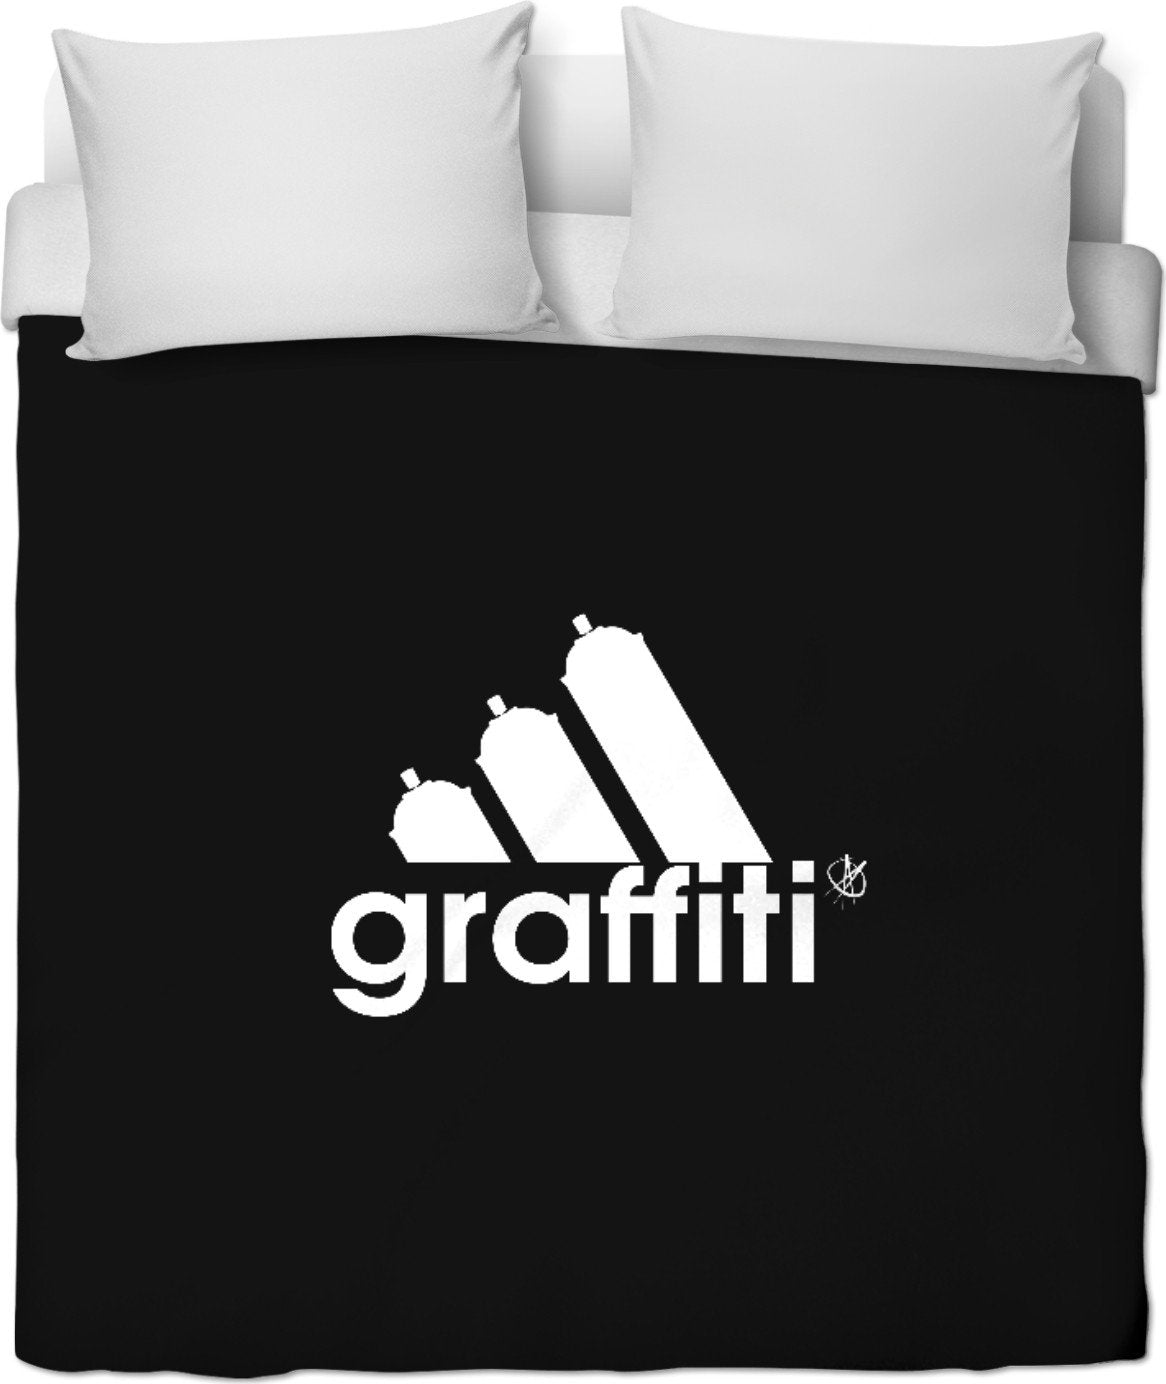 NEW Graffiti Duvet Cover